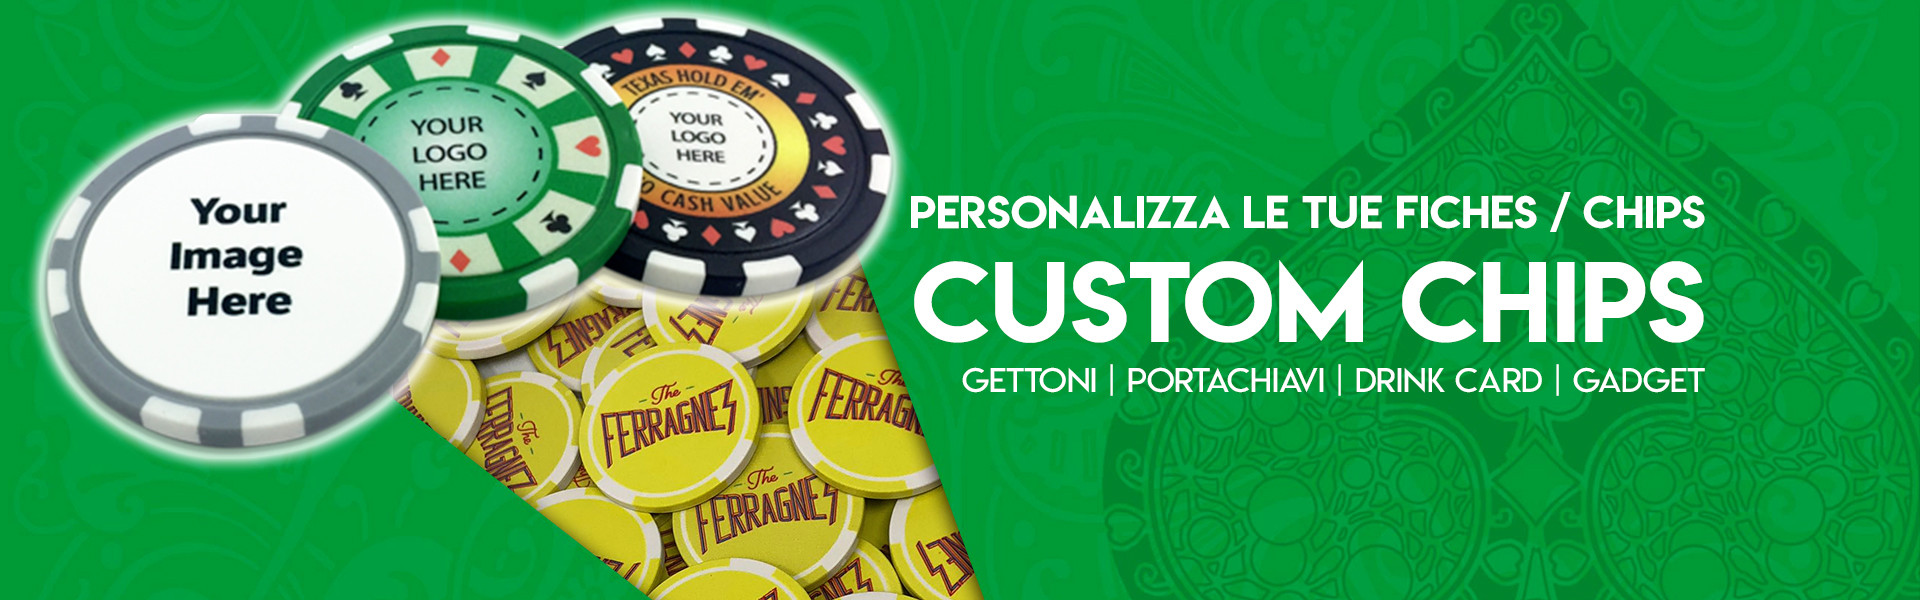 Chips Personalizzate